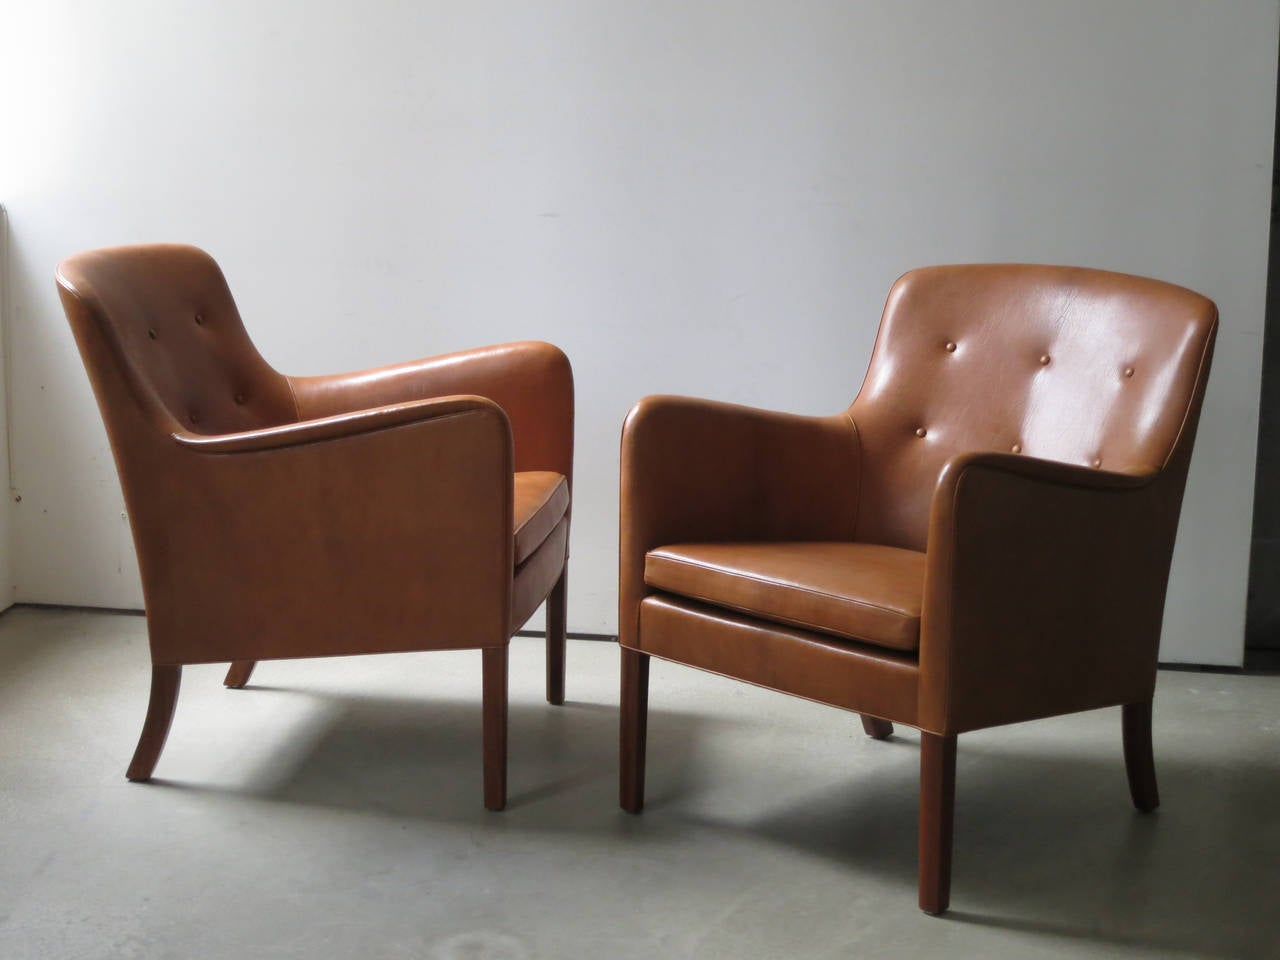 Pair of 1940s Lounge Chairs in Nigerian Leather by Ole Wanscher. This pair of elegant and comfortable lounge chairs in natural Nigerian goat hide was designed by Ole Wanscher and made by master cabinetmaker A.J. Iversen in the 1940s.